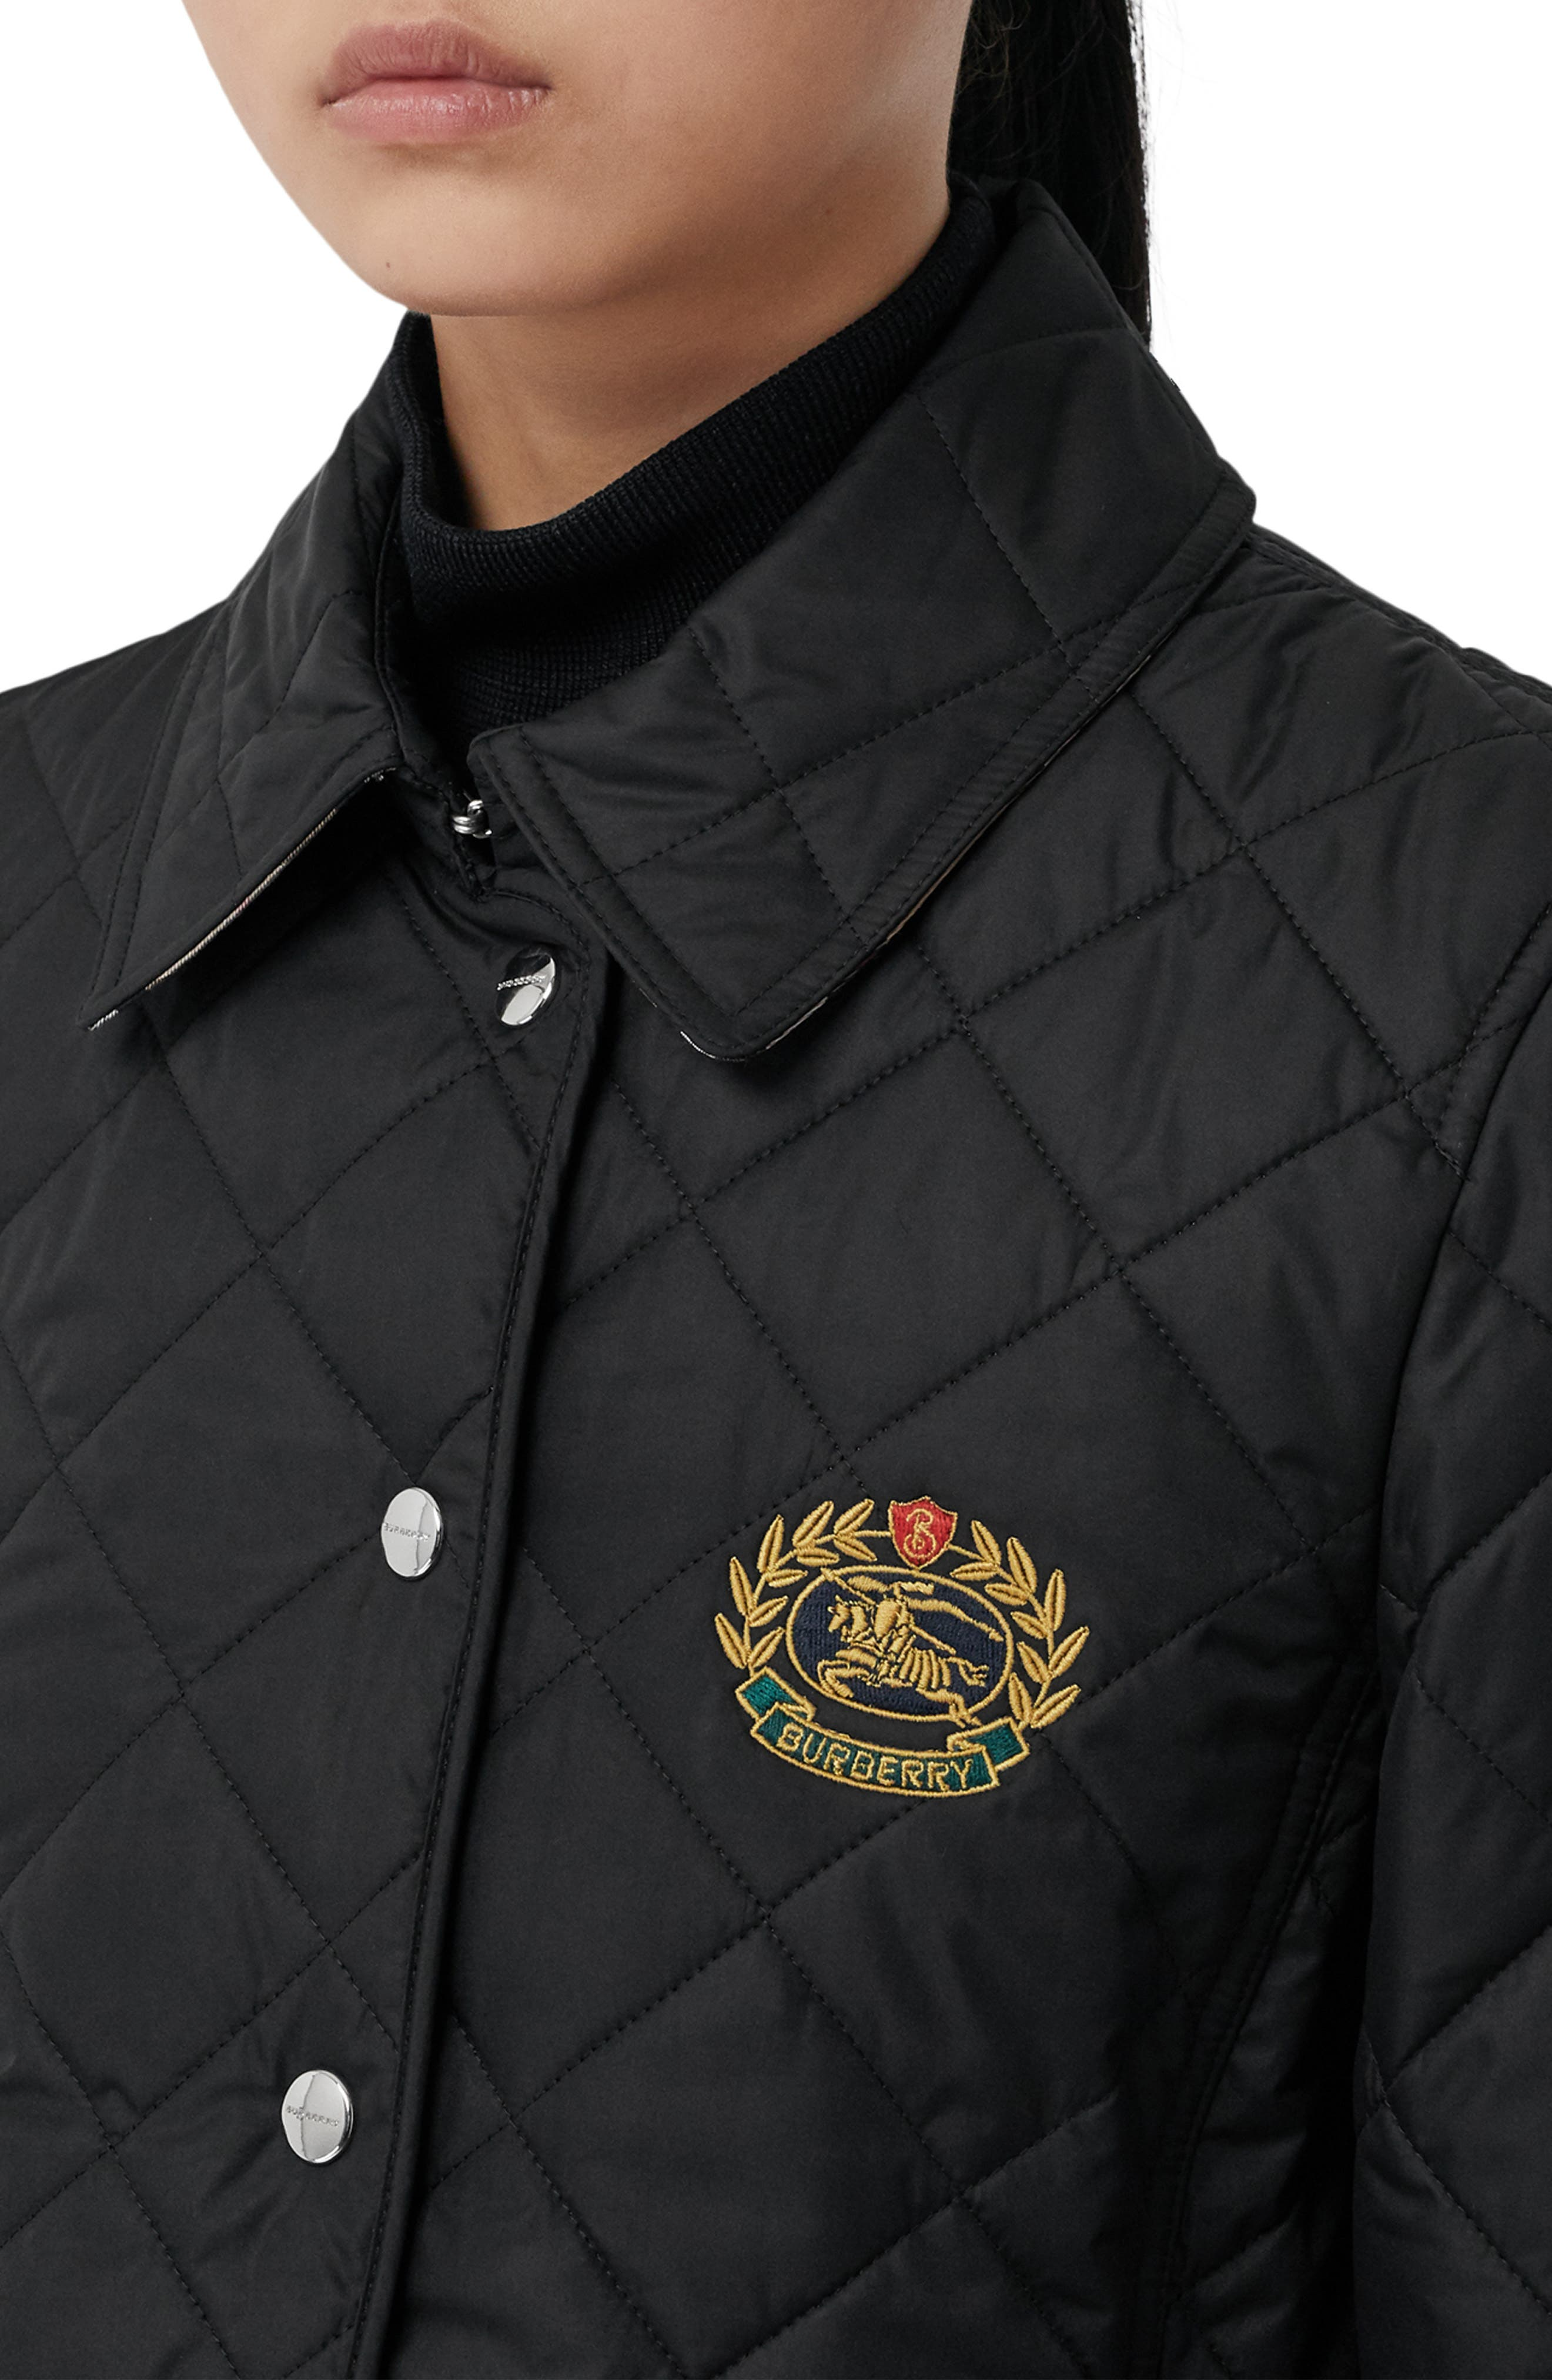 Franwell Diamond Quilted Jacket,                             Alternate thumbnail 4, color,                             BLACK